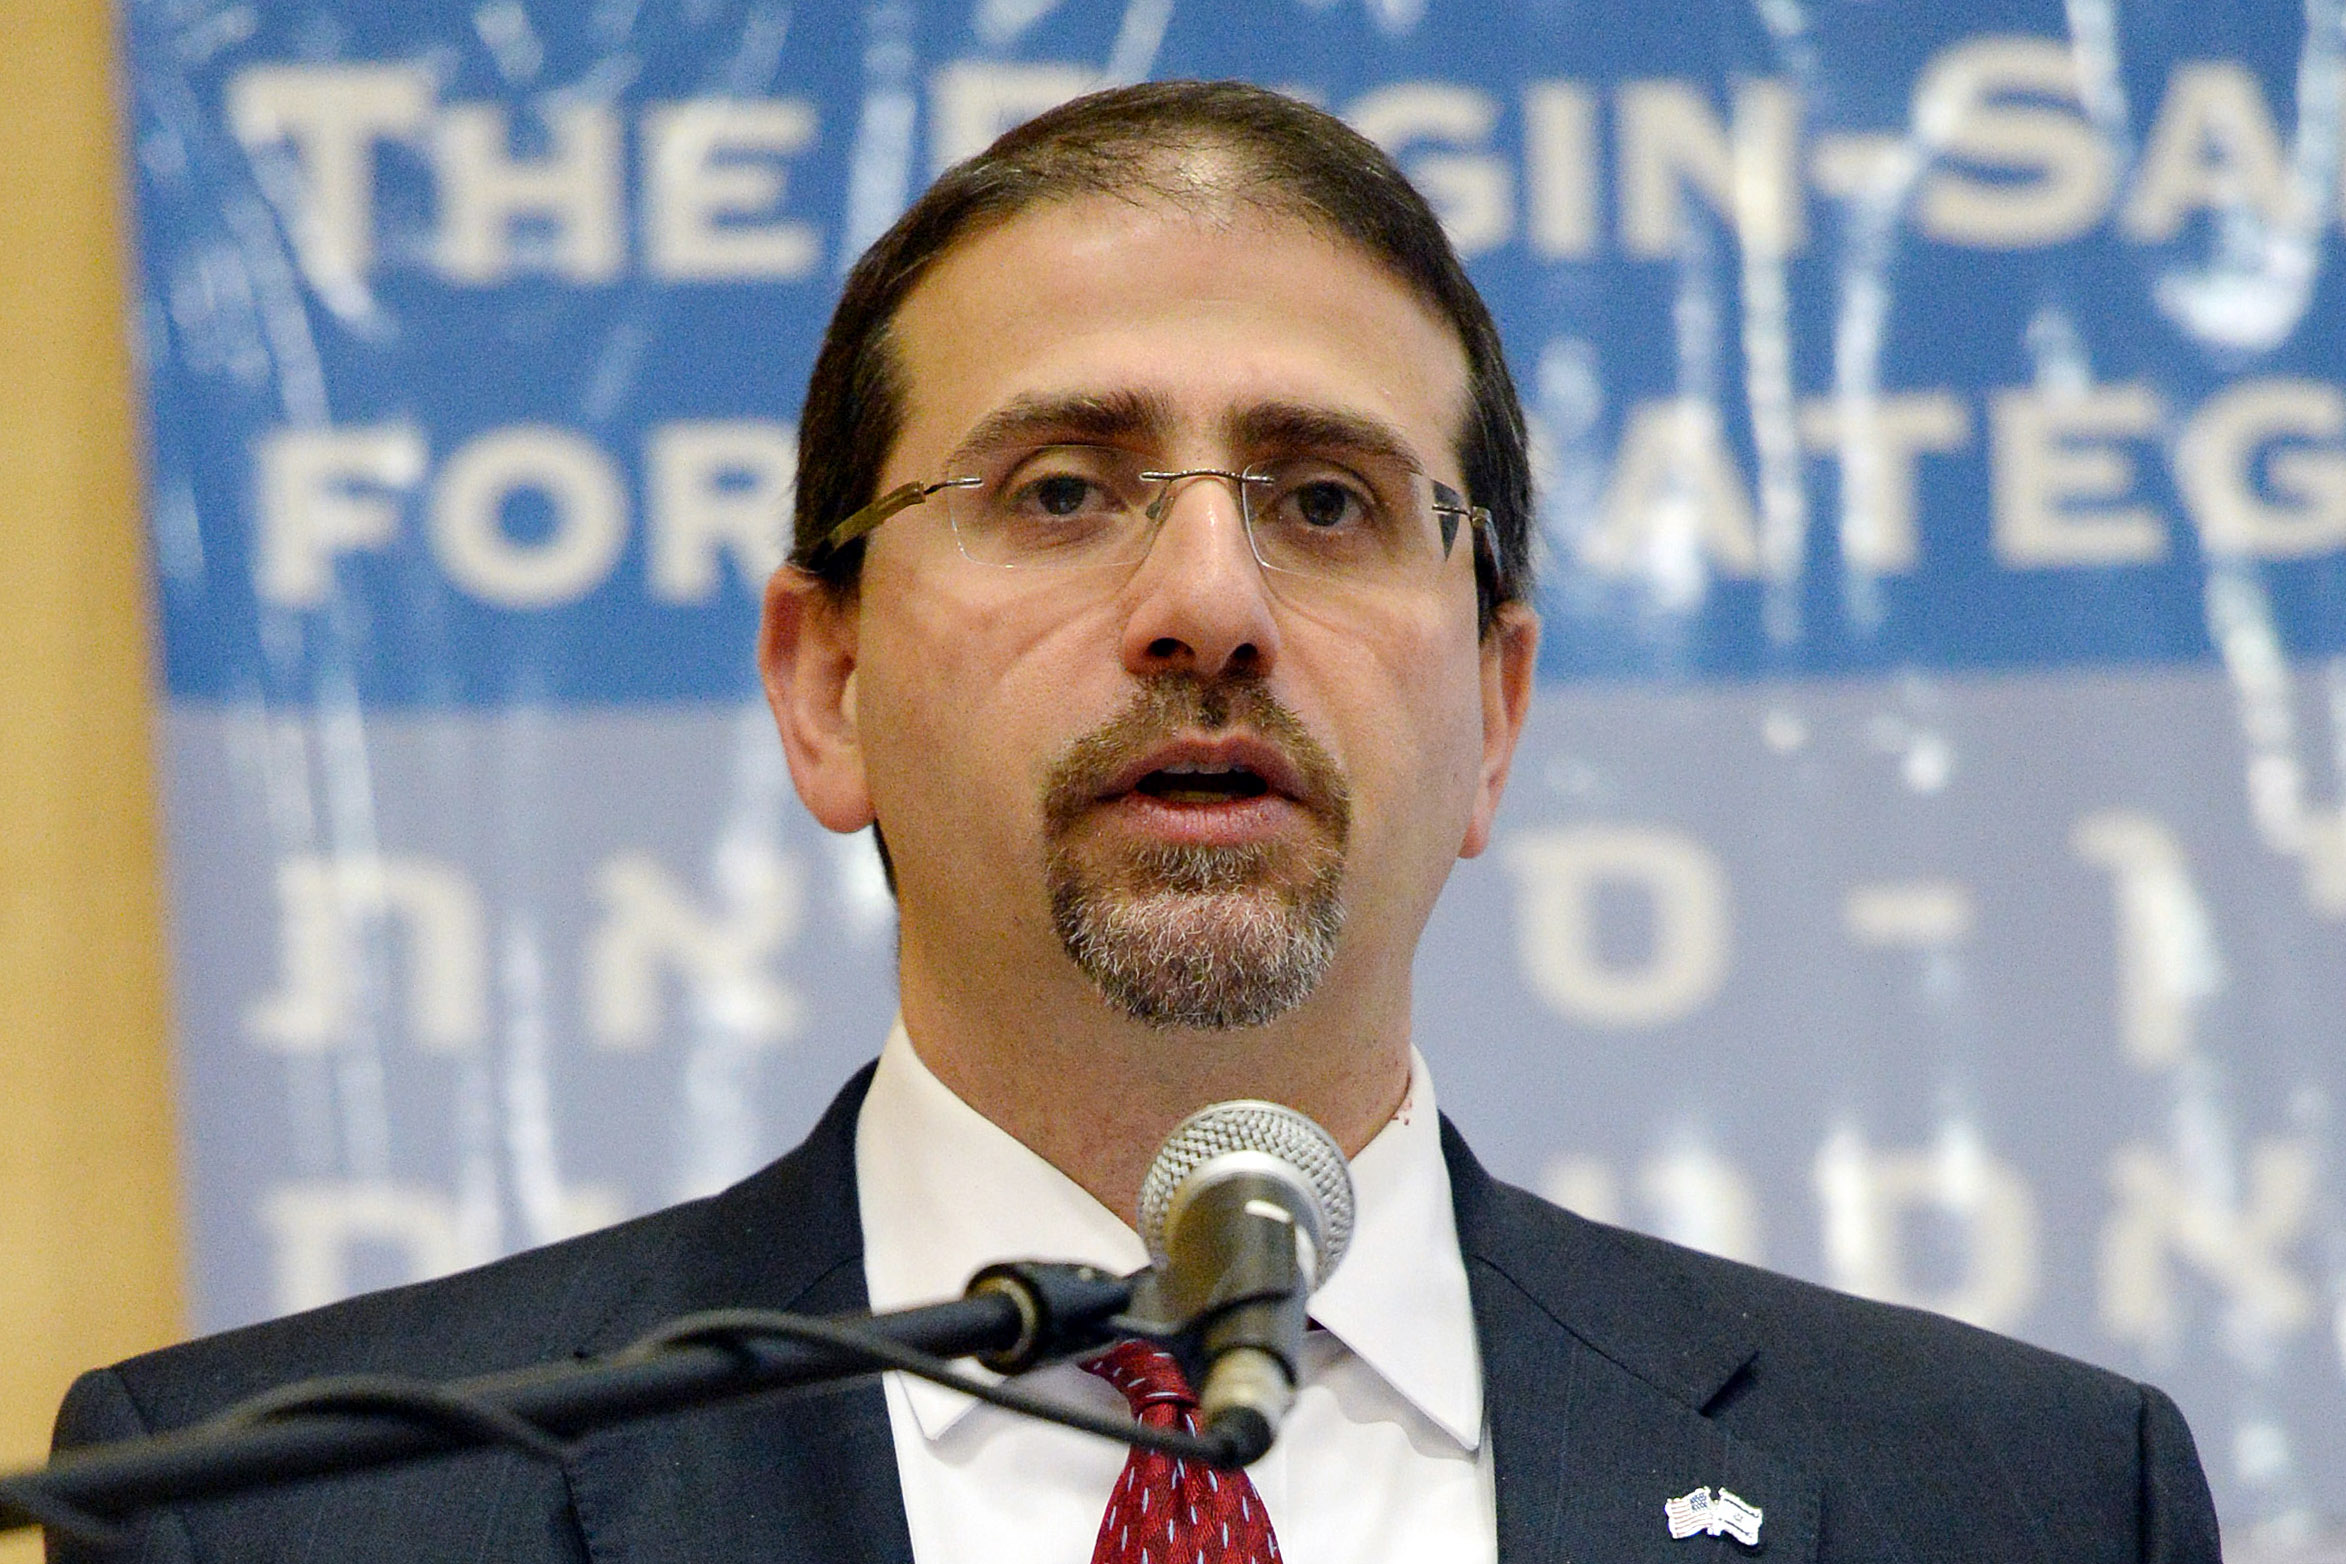 US Ambassador Dan Shapiro Summoned For Reprimand